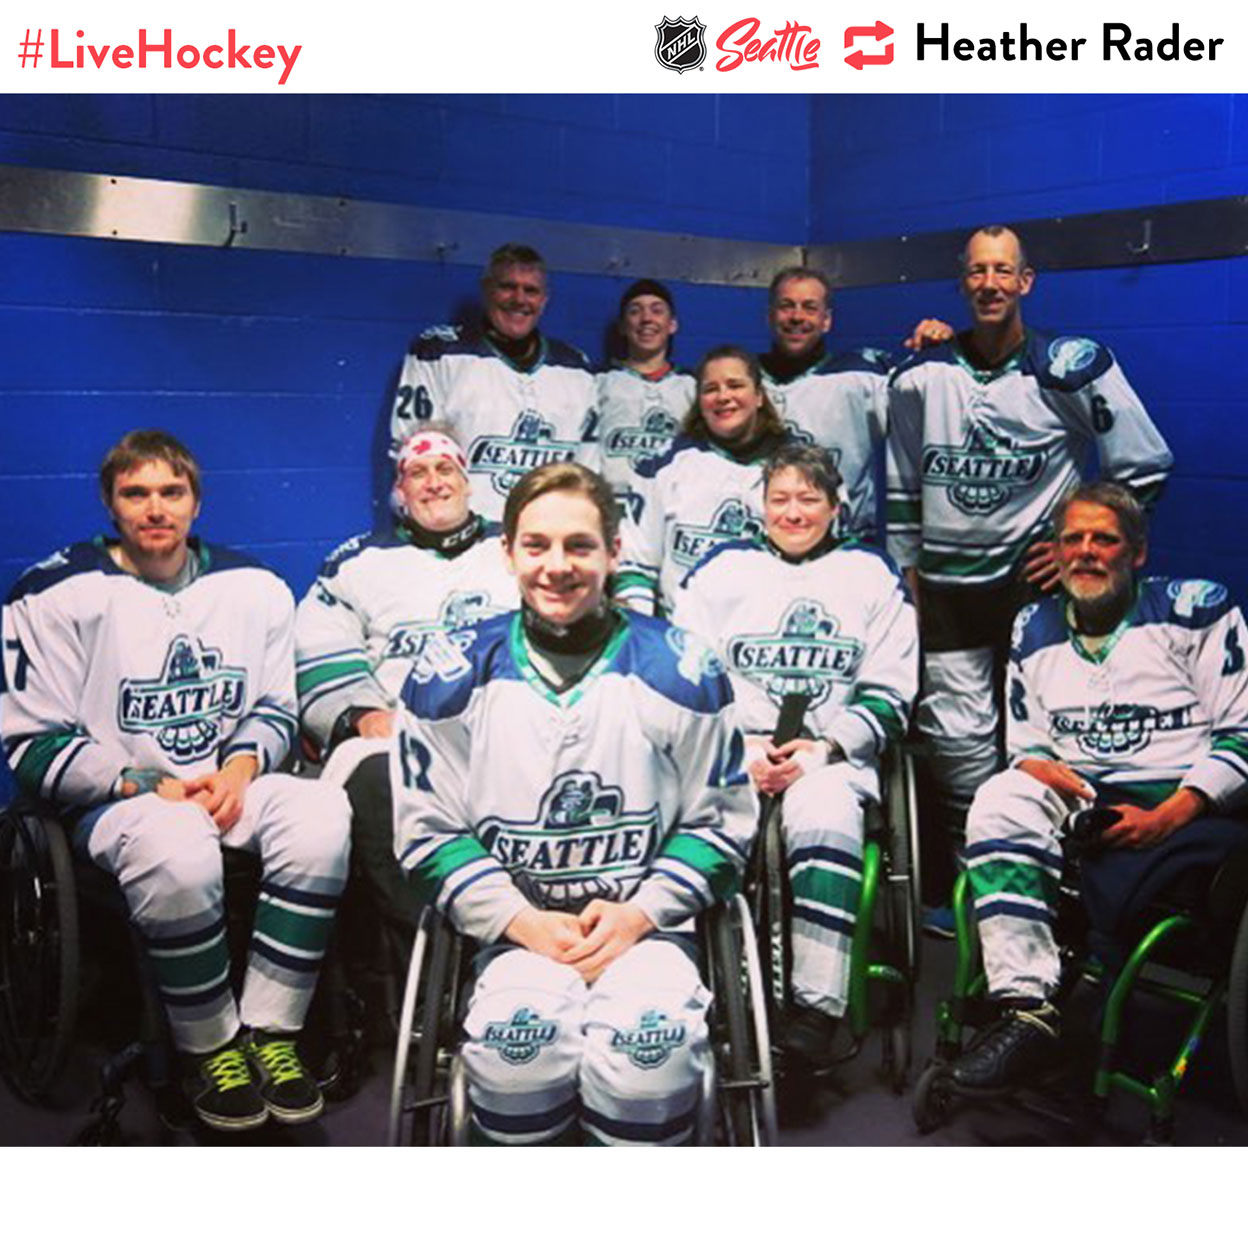 """""""Seattle #Tbirds #SledHockey team #livehockey, and we're all excited as hell for the Seattle franchise!"""""""